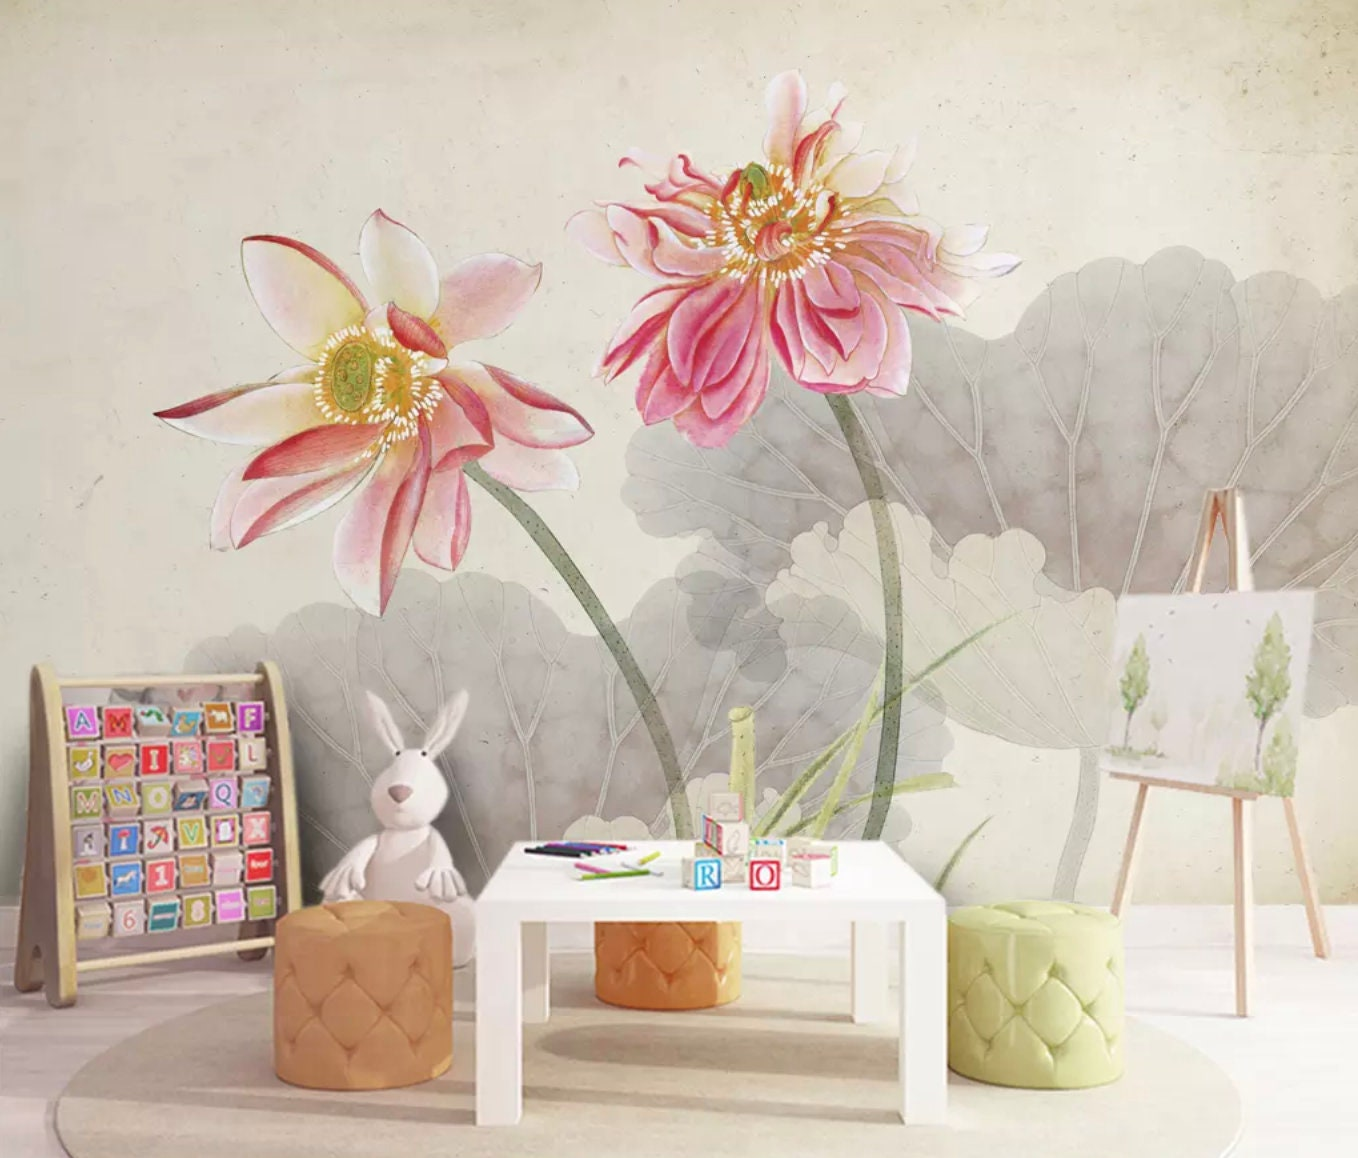 Floral Wallpaper Lotus Flower Wall Mural Charcoal Floral Wall Etsy